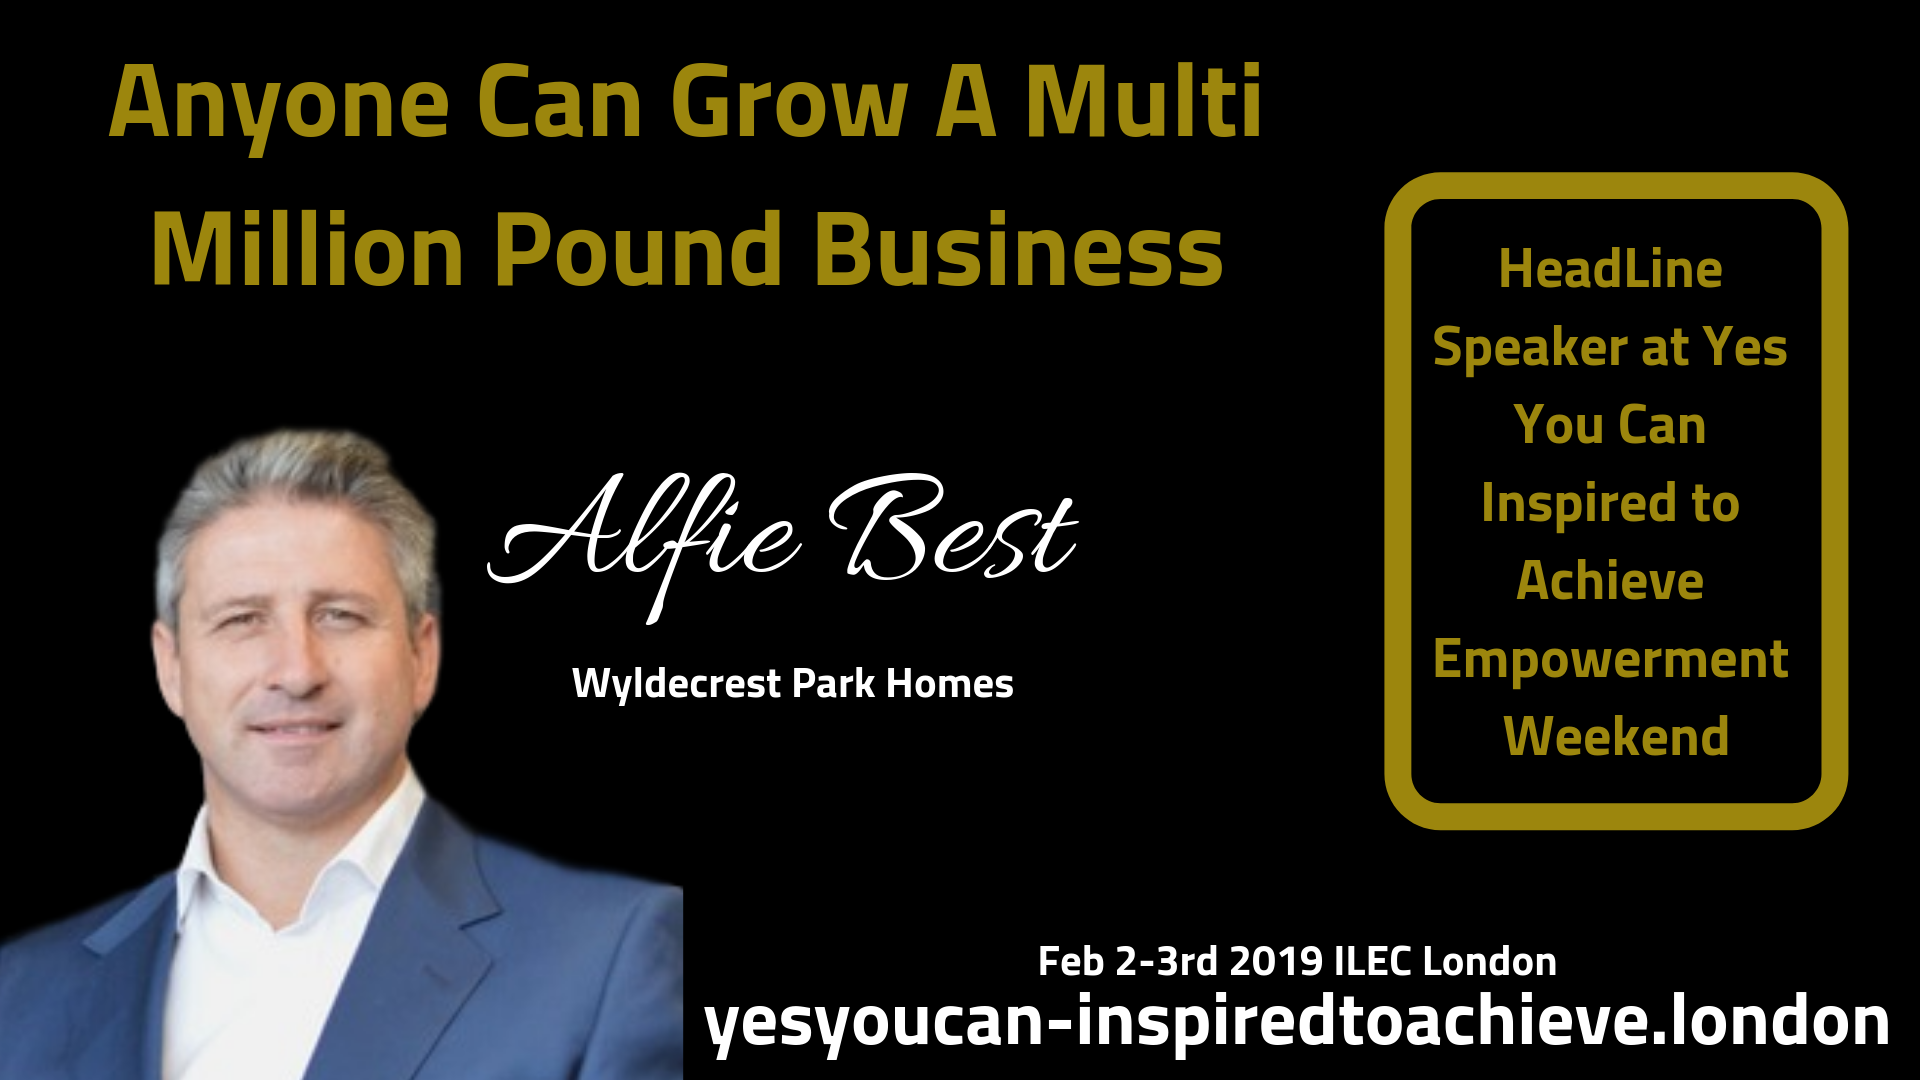 Anyone Can Grow a Multi Million Pound Business